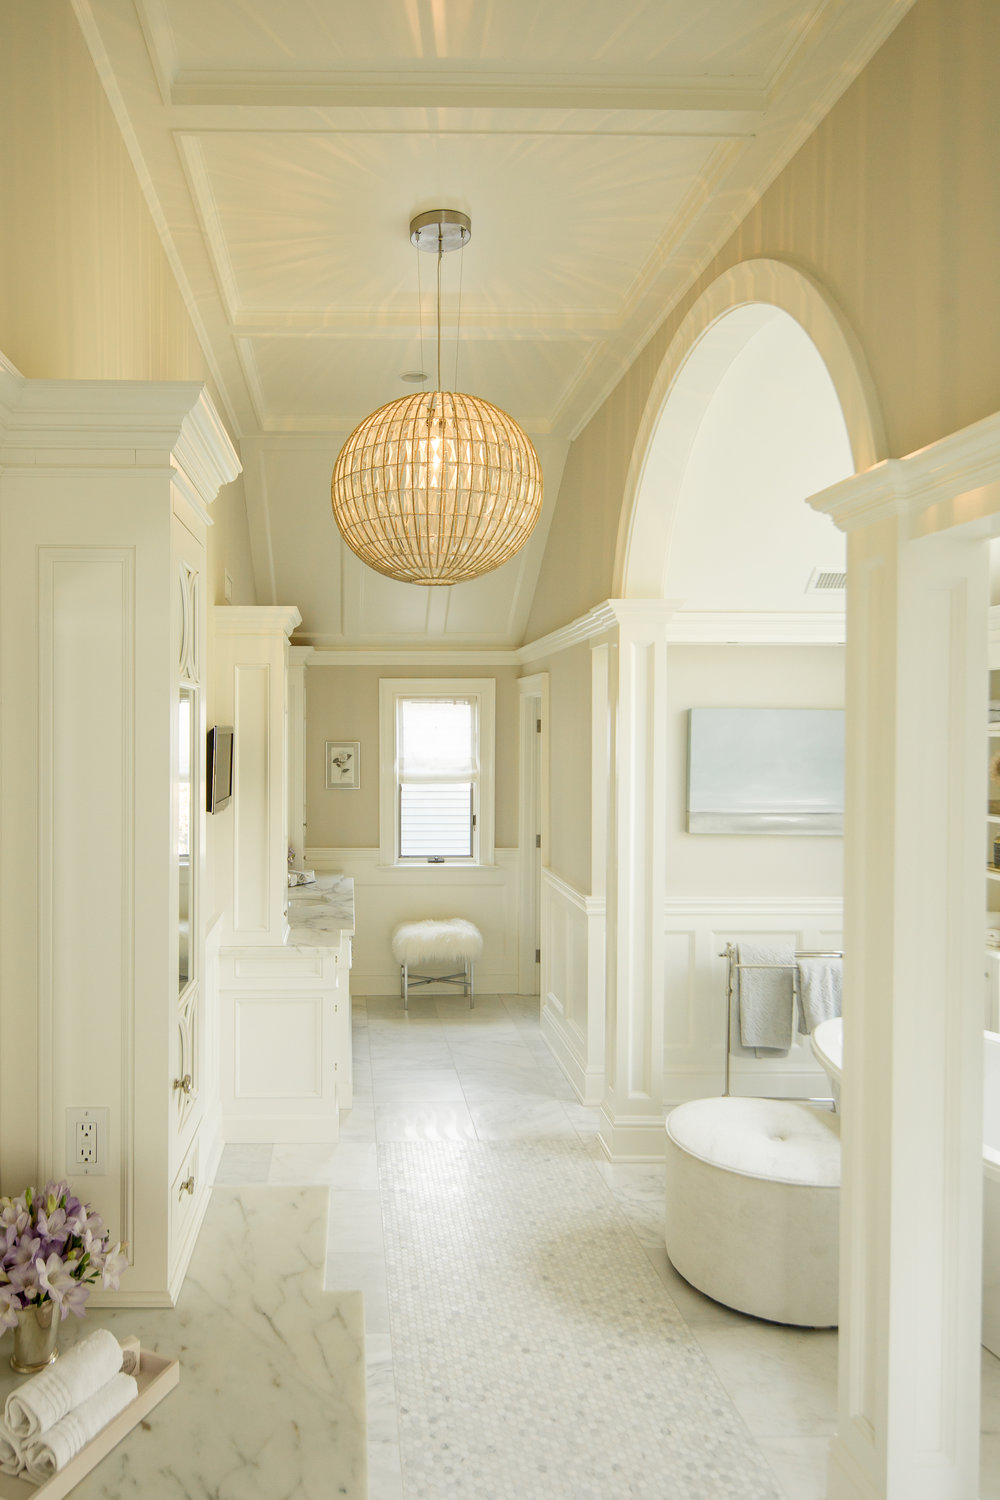 Jill Kalman Bathroom